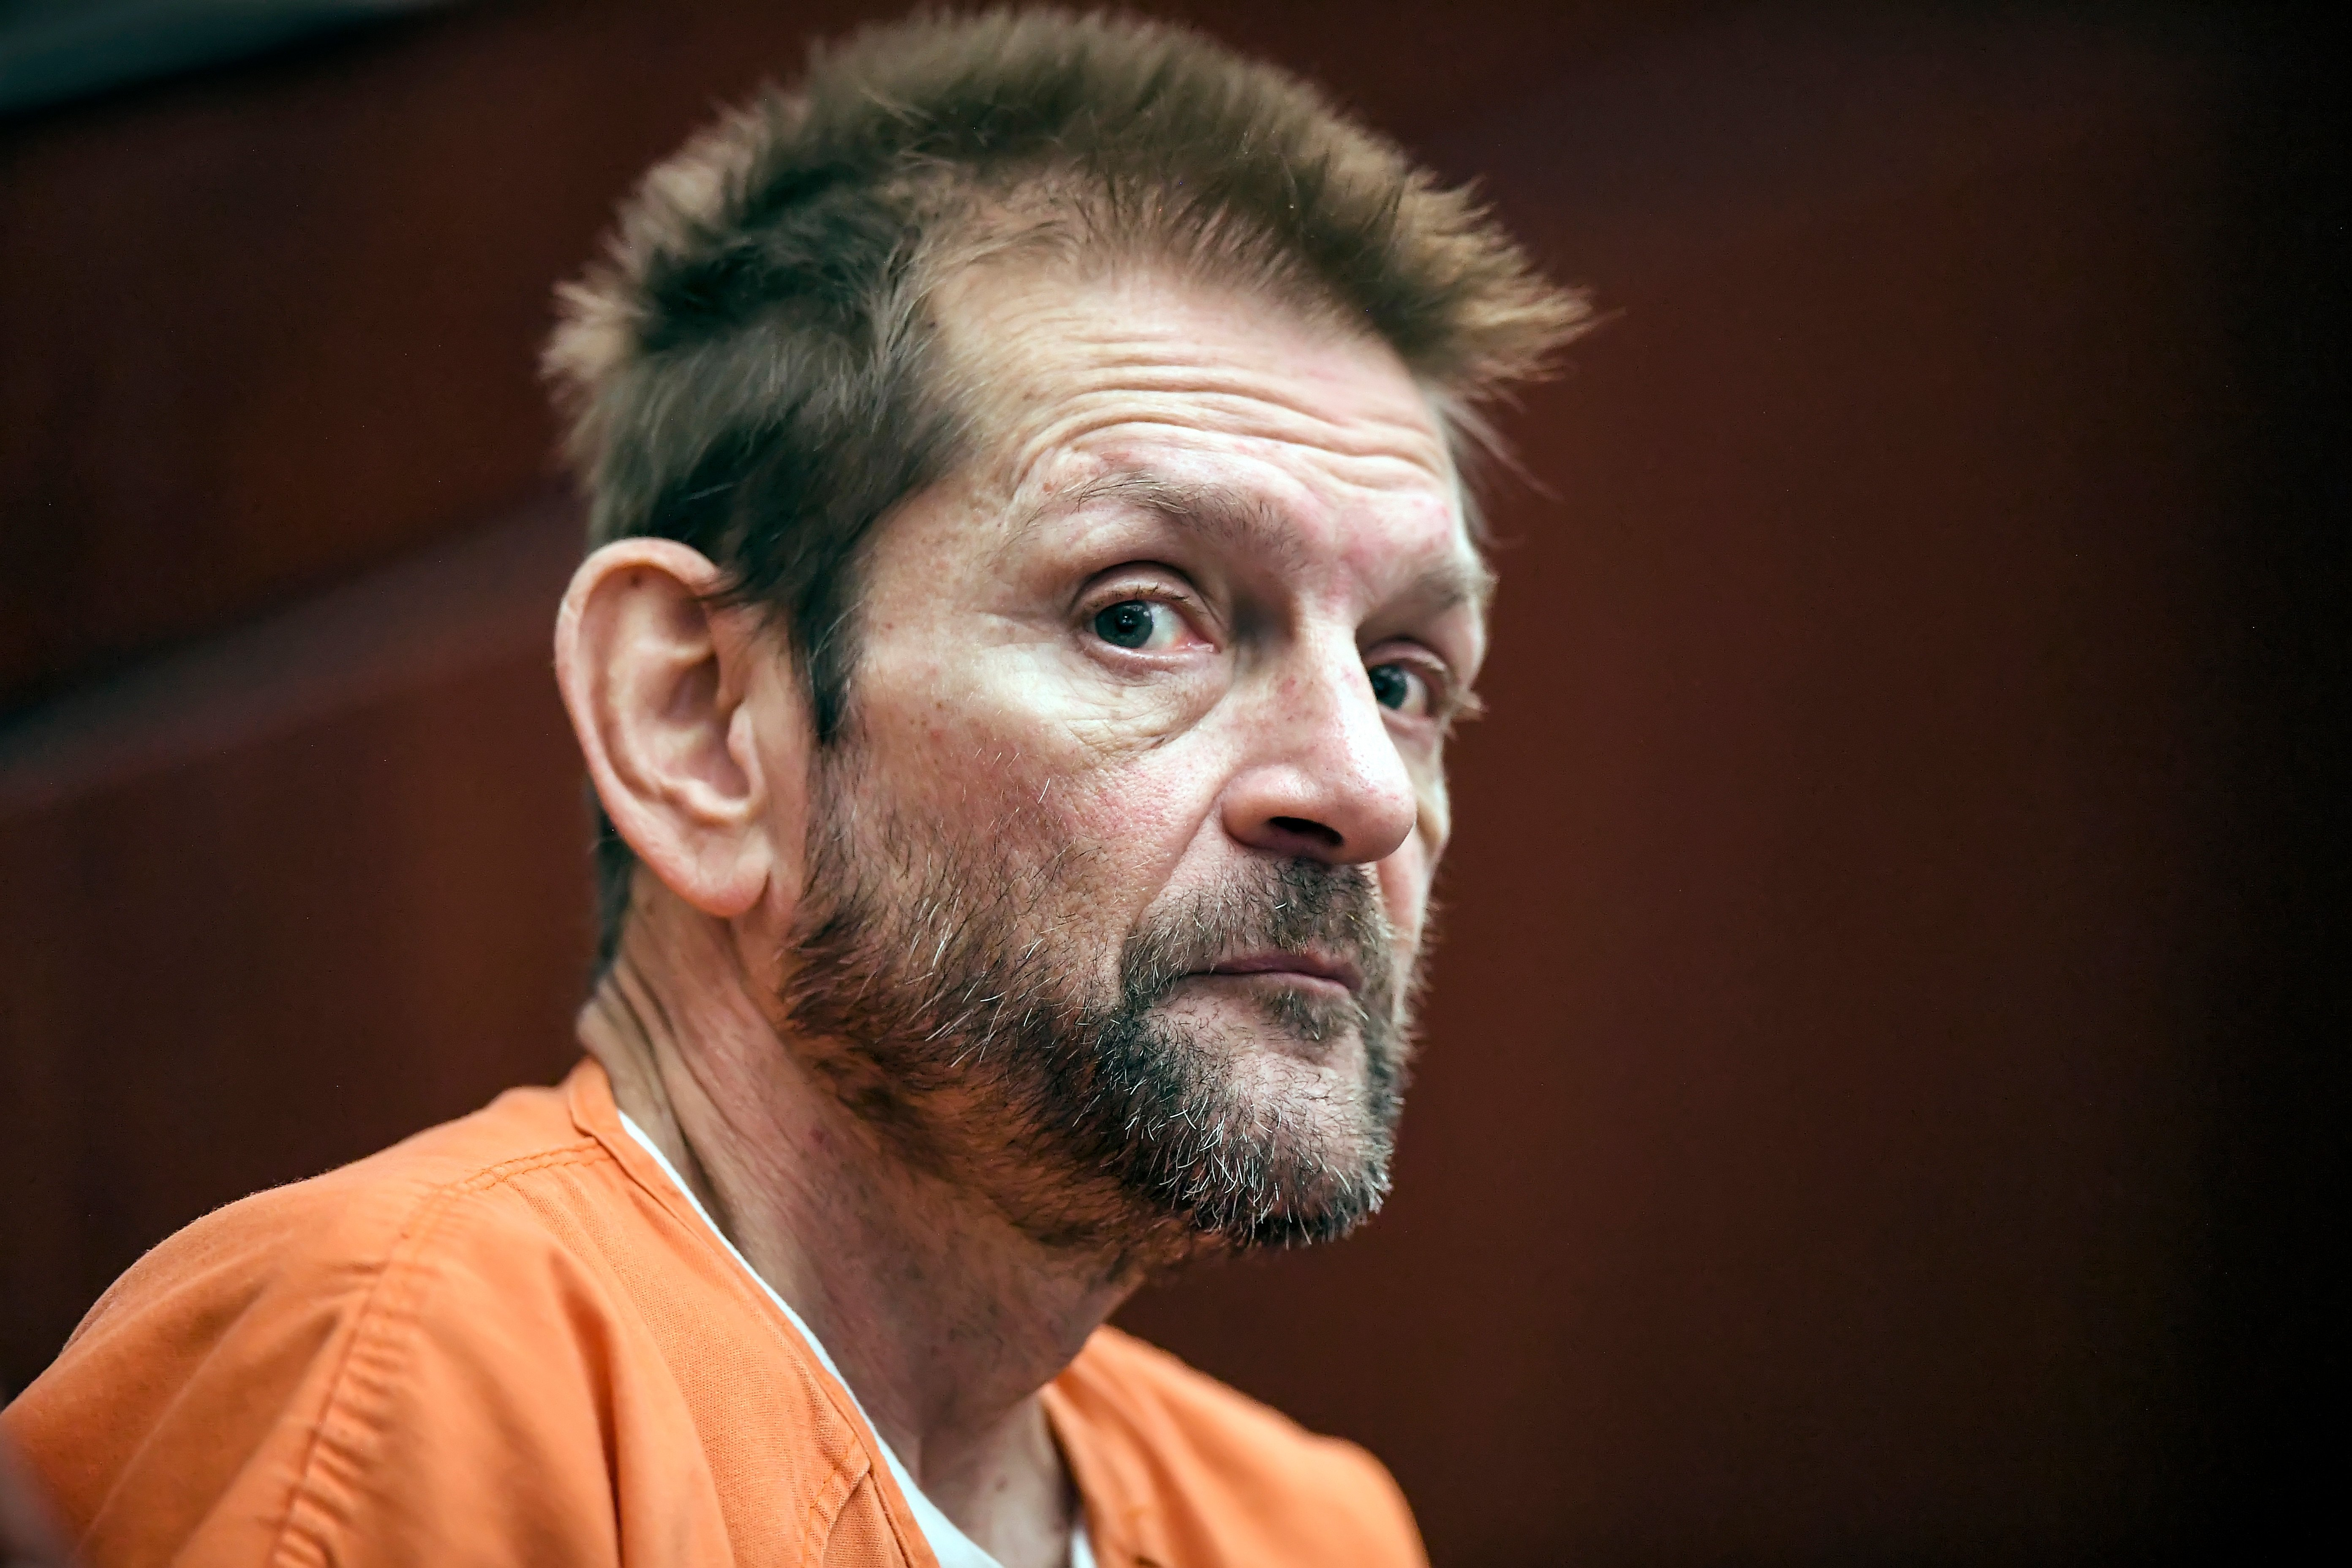 Bar gunman who yelled 'Get out of my country' pleads guilty to murder